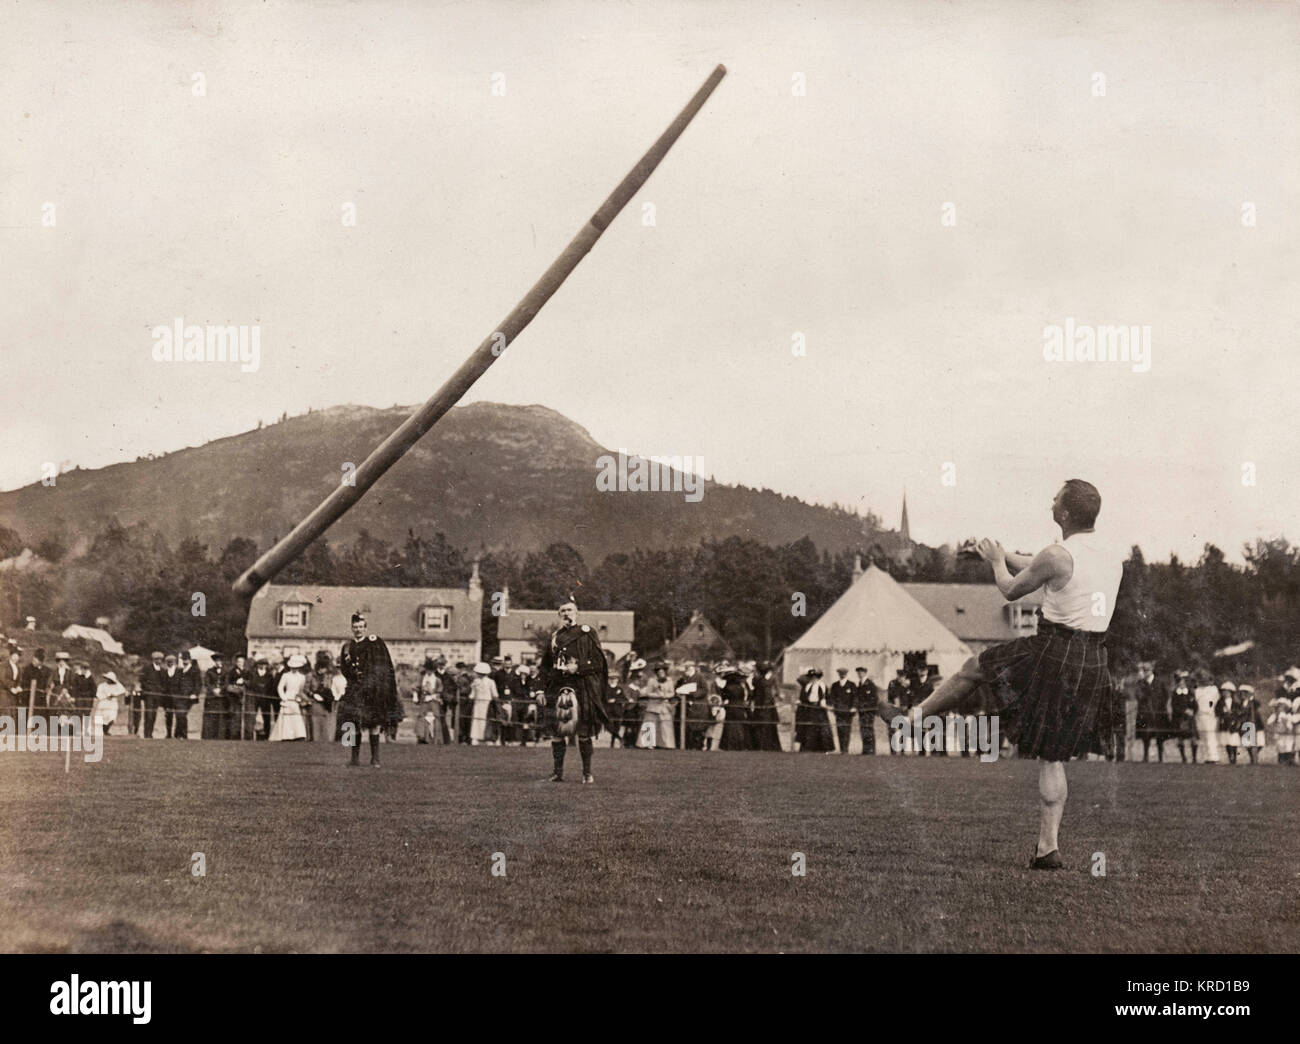 Scene at the annual Braemar Gathering, showing McIntosh of Partick tossing the caber.  Braemar in Scotland holds Stock Photo